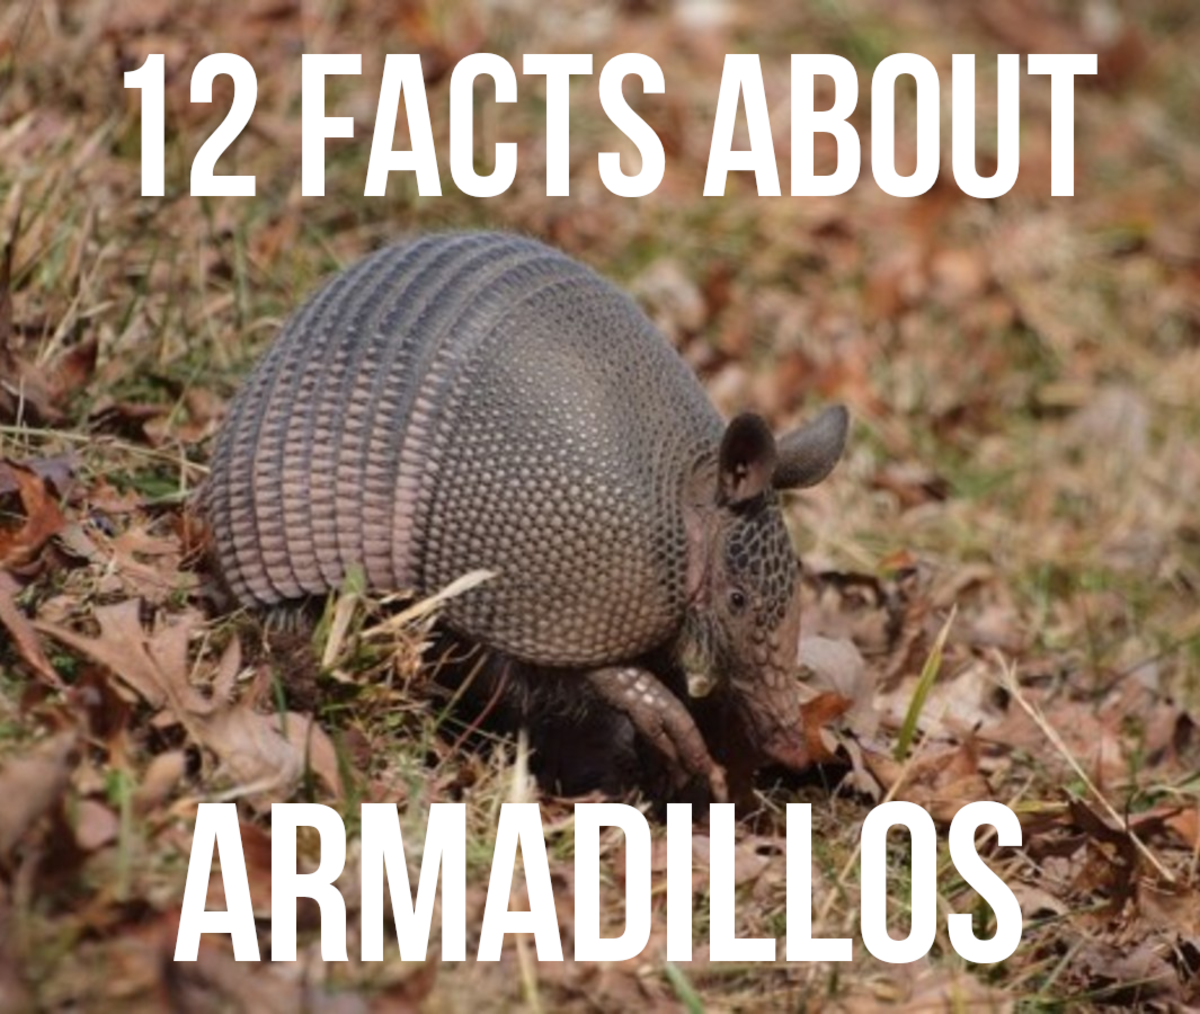 12 Facts About Armadillos